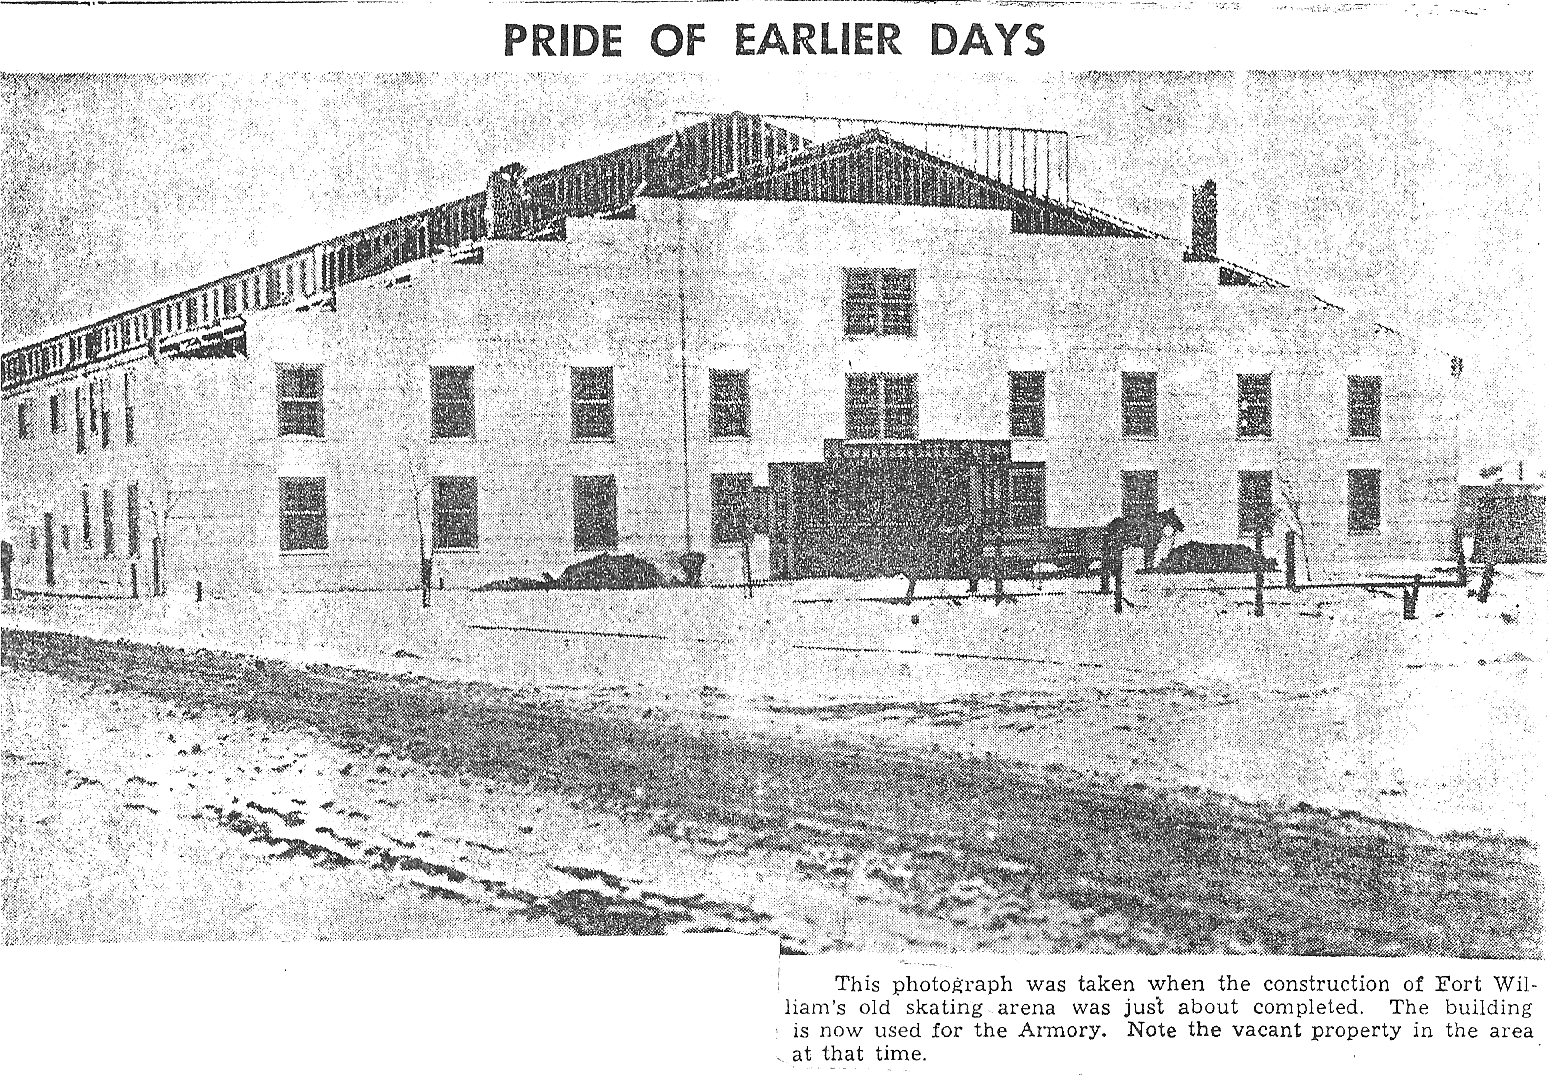 Prince of Wales Arena (Fort William)